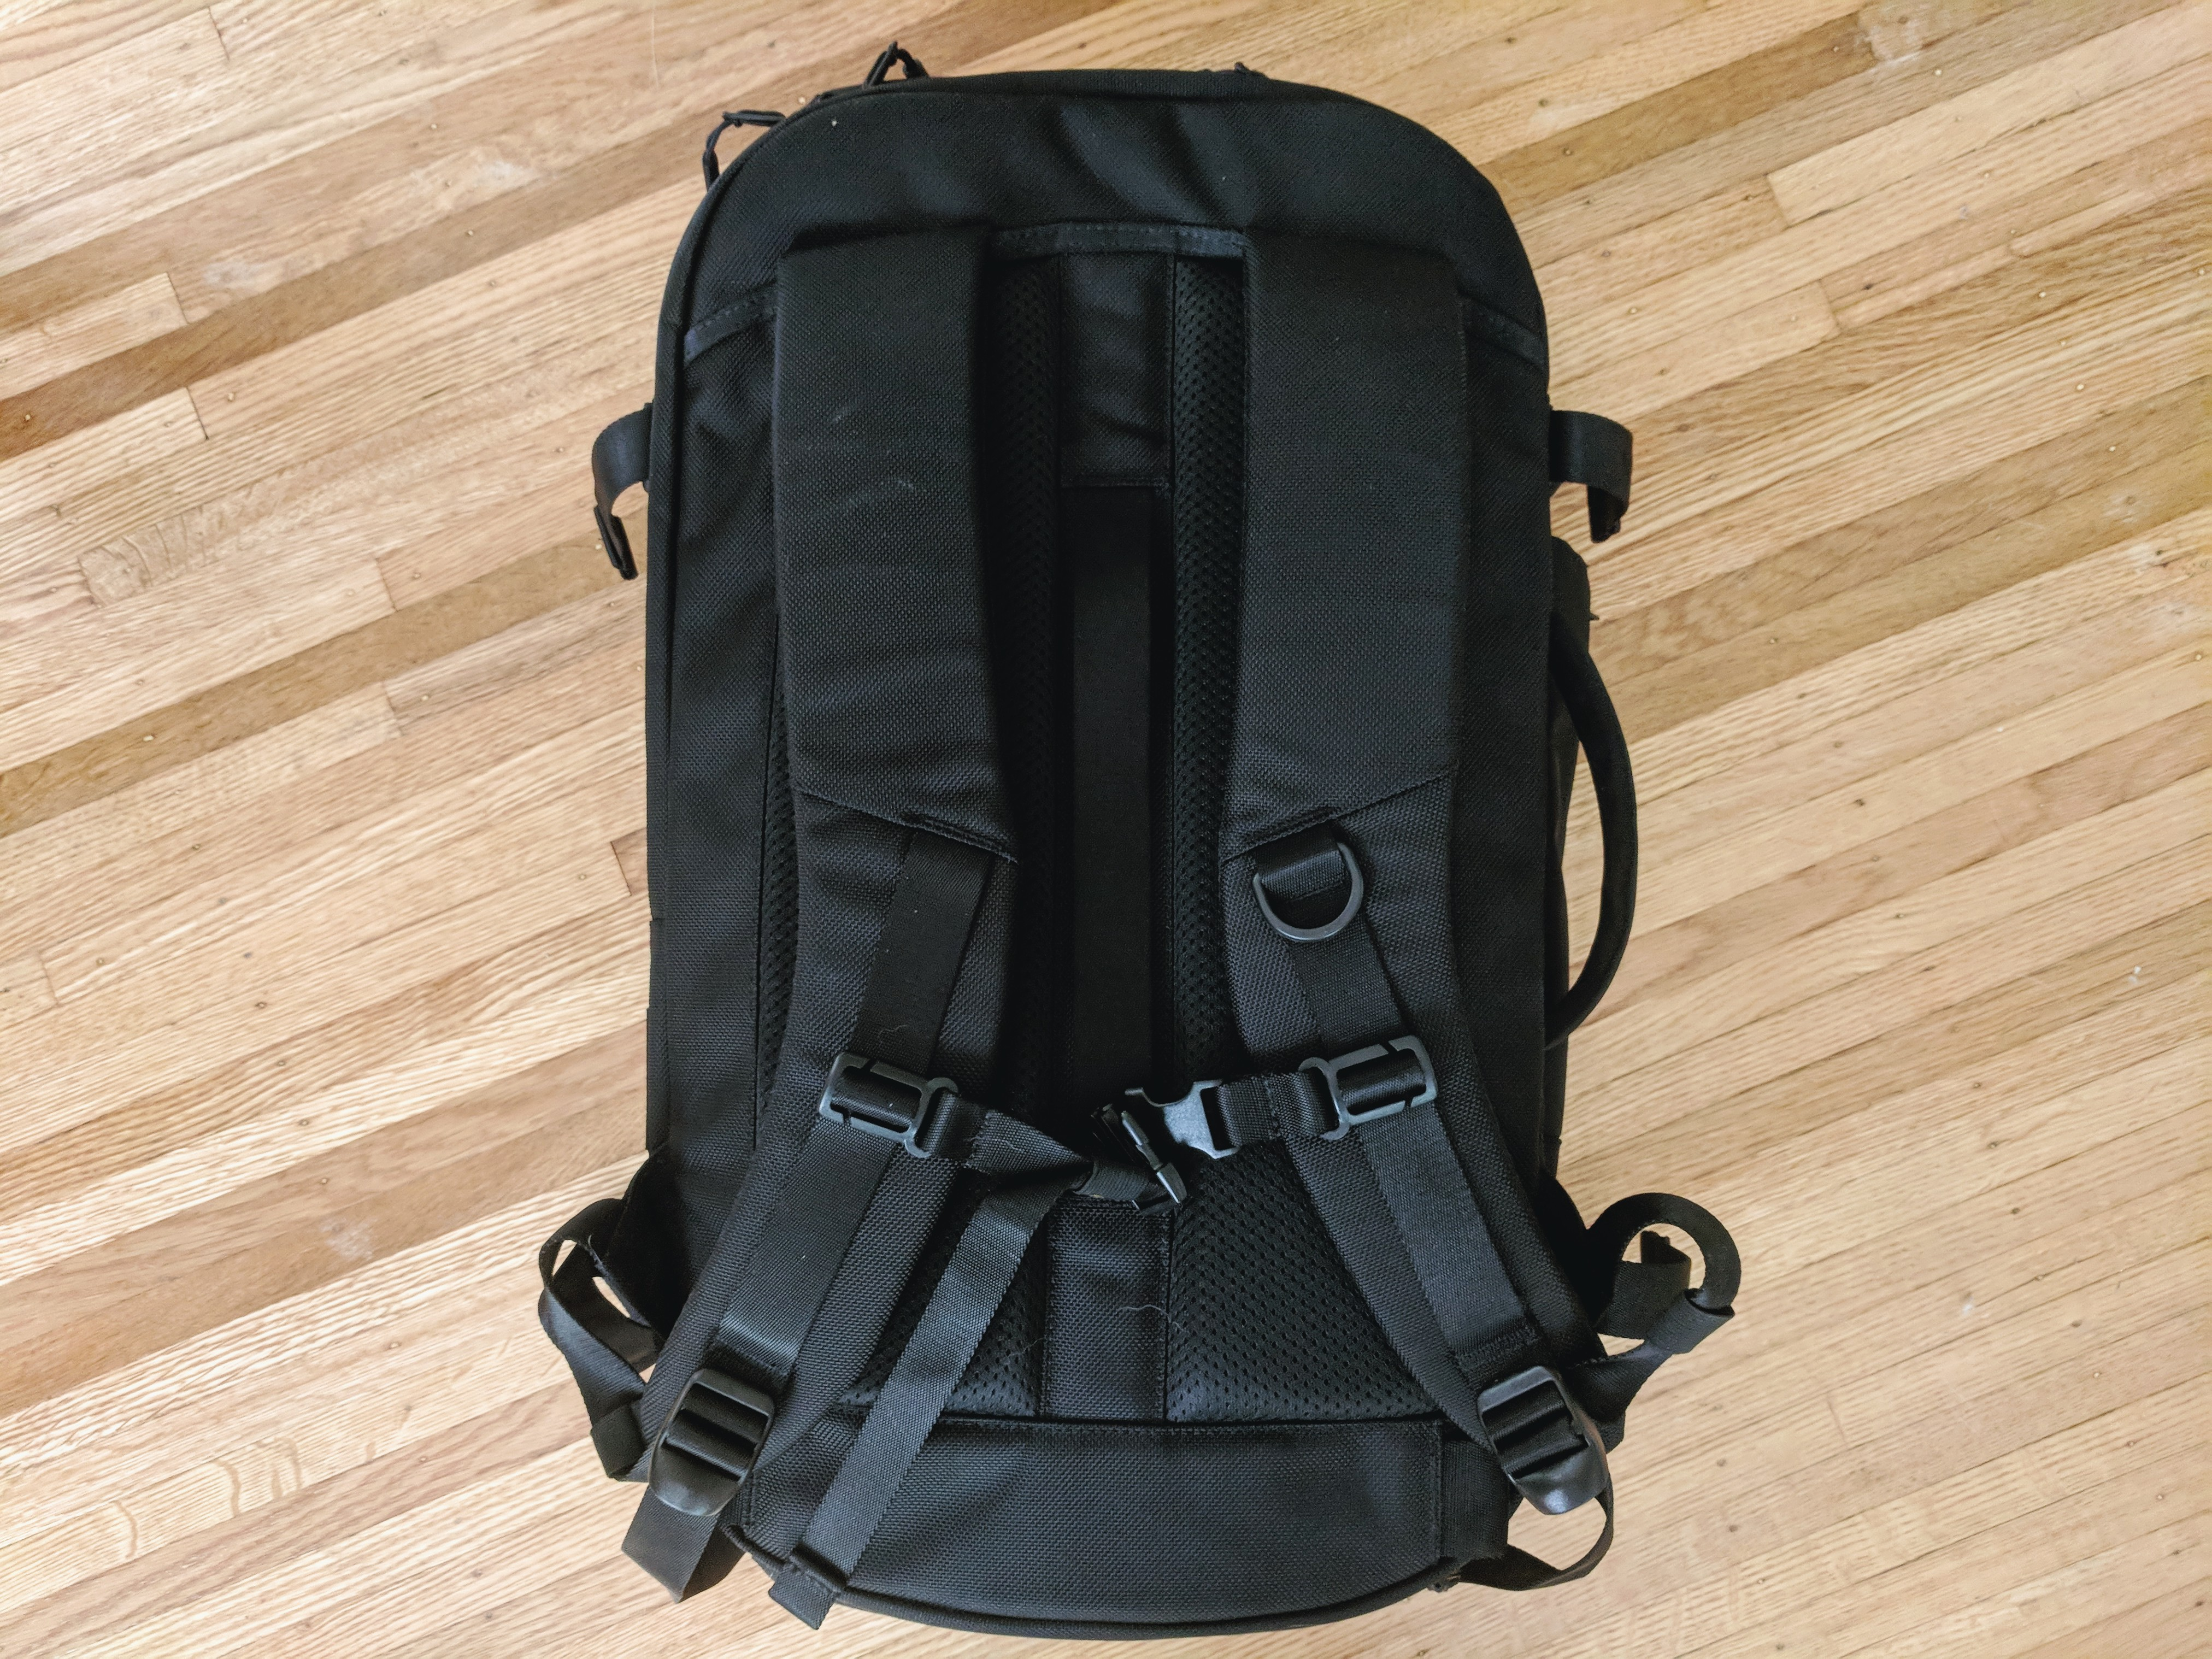 Aer Travel Pack 2 backpack review straps back panel view padding sternum strap